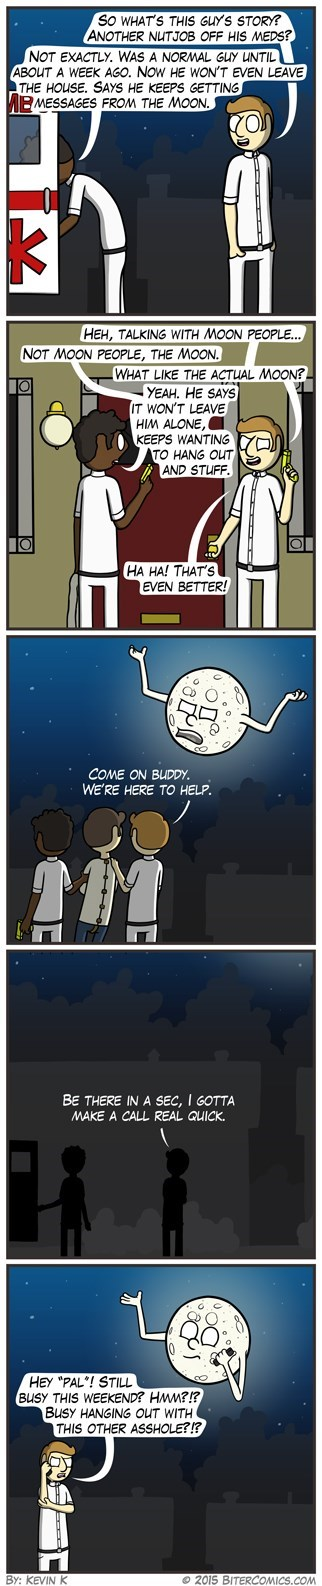 freaks moon idgi web comics - 8554742528